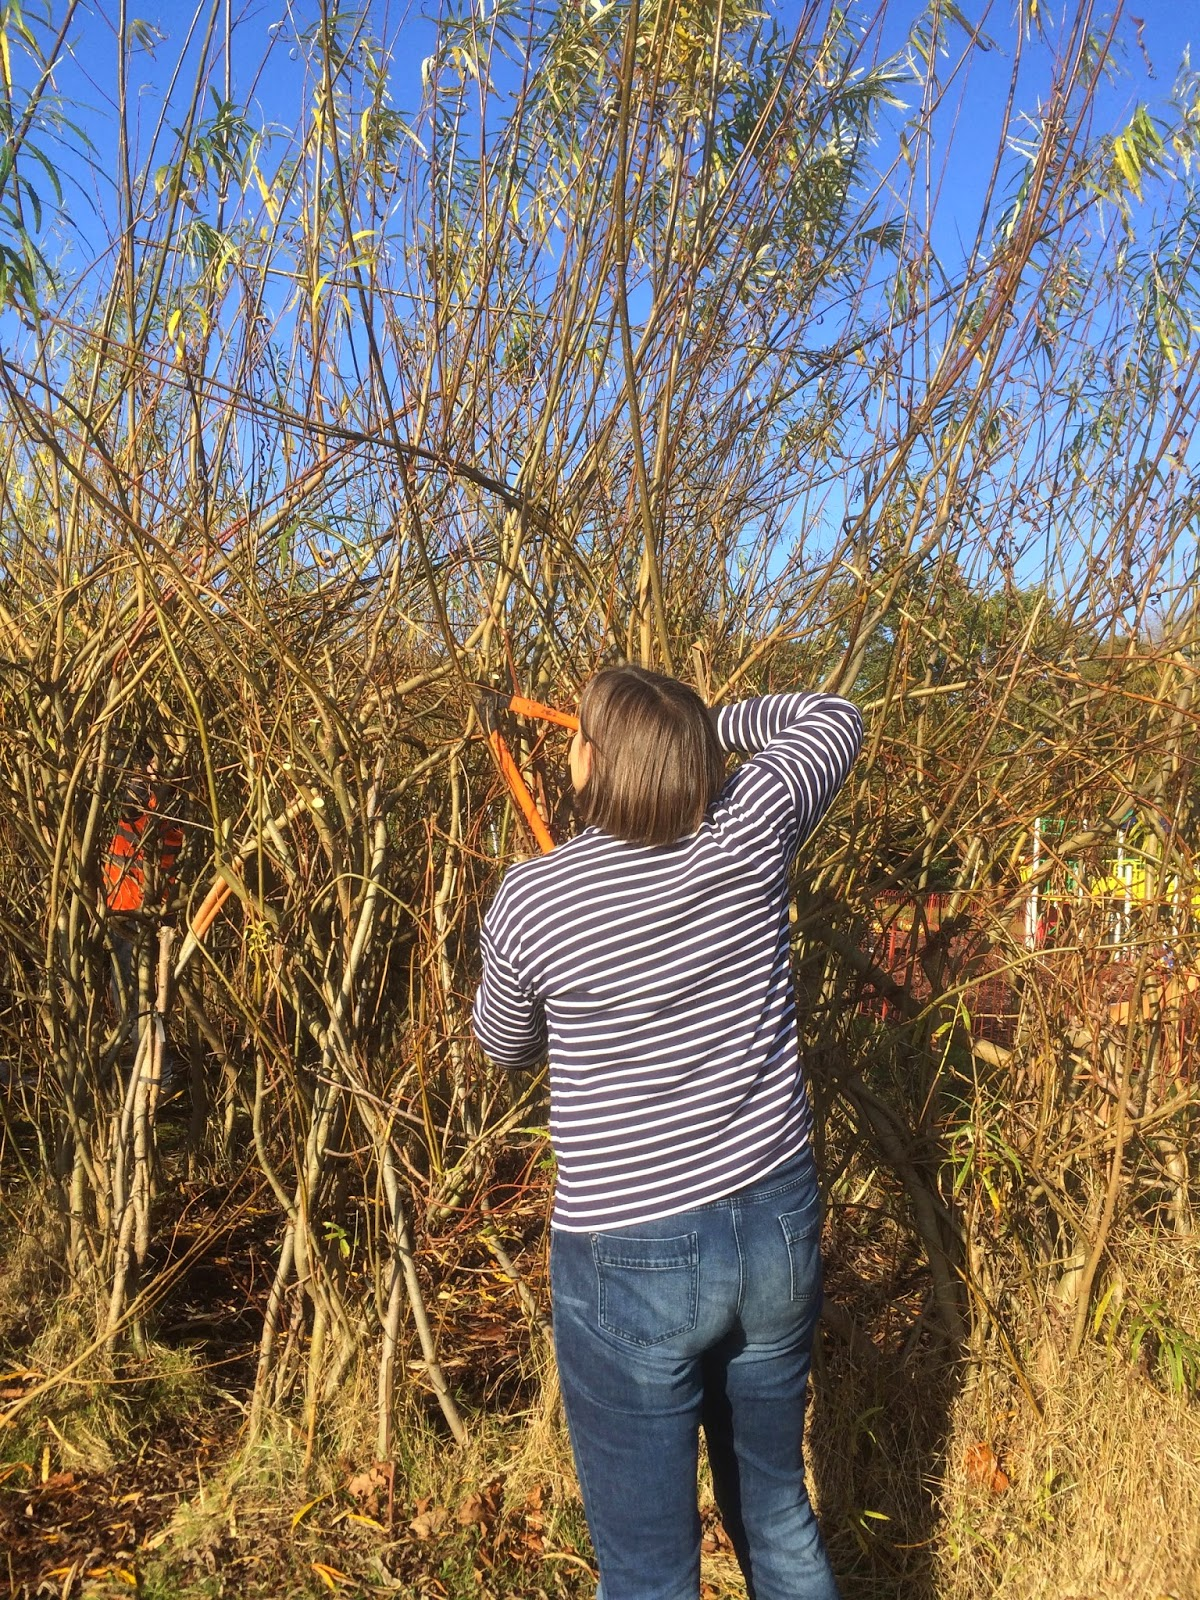 Chopping for the willow stockpile in readiness for wreath making